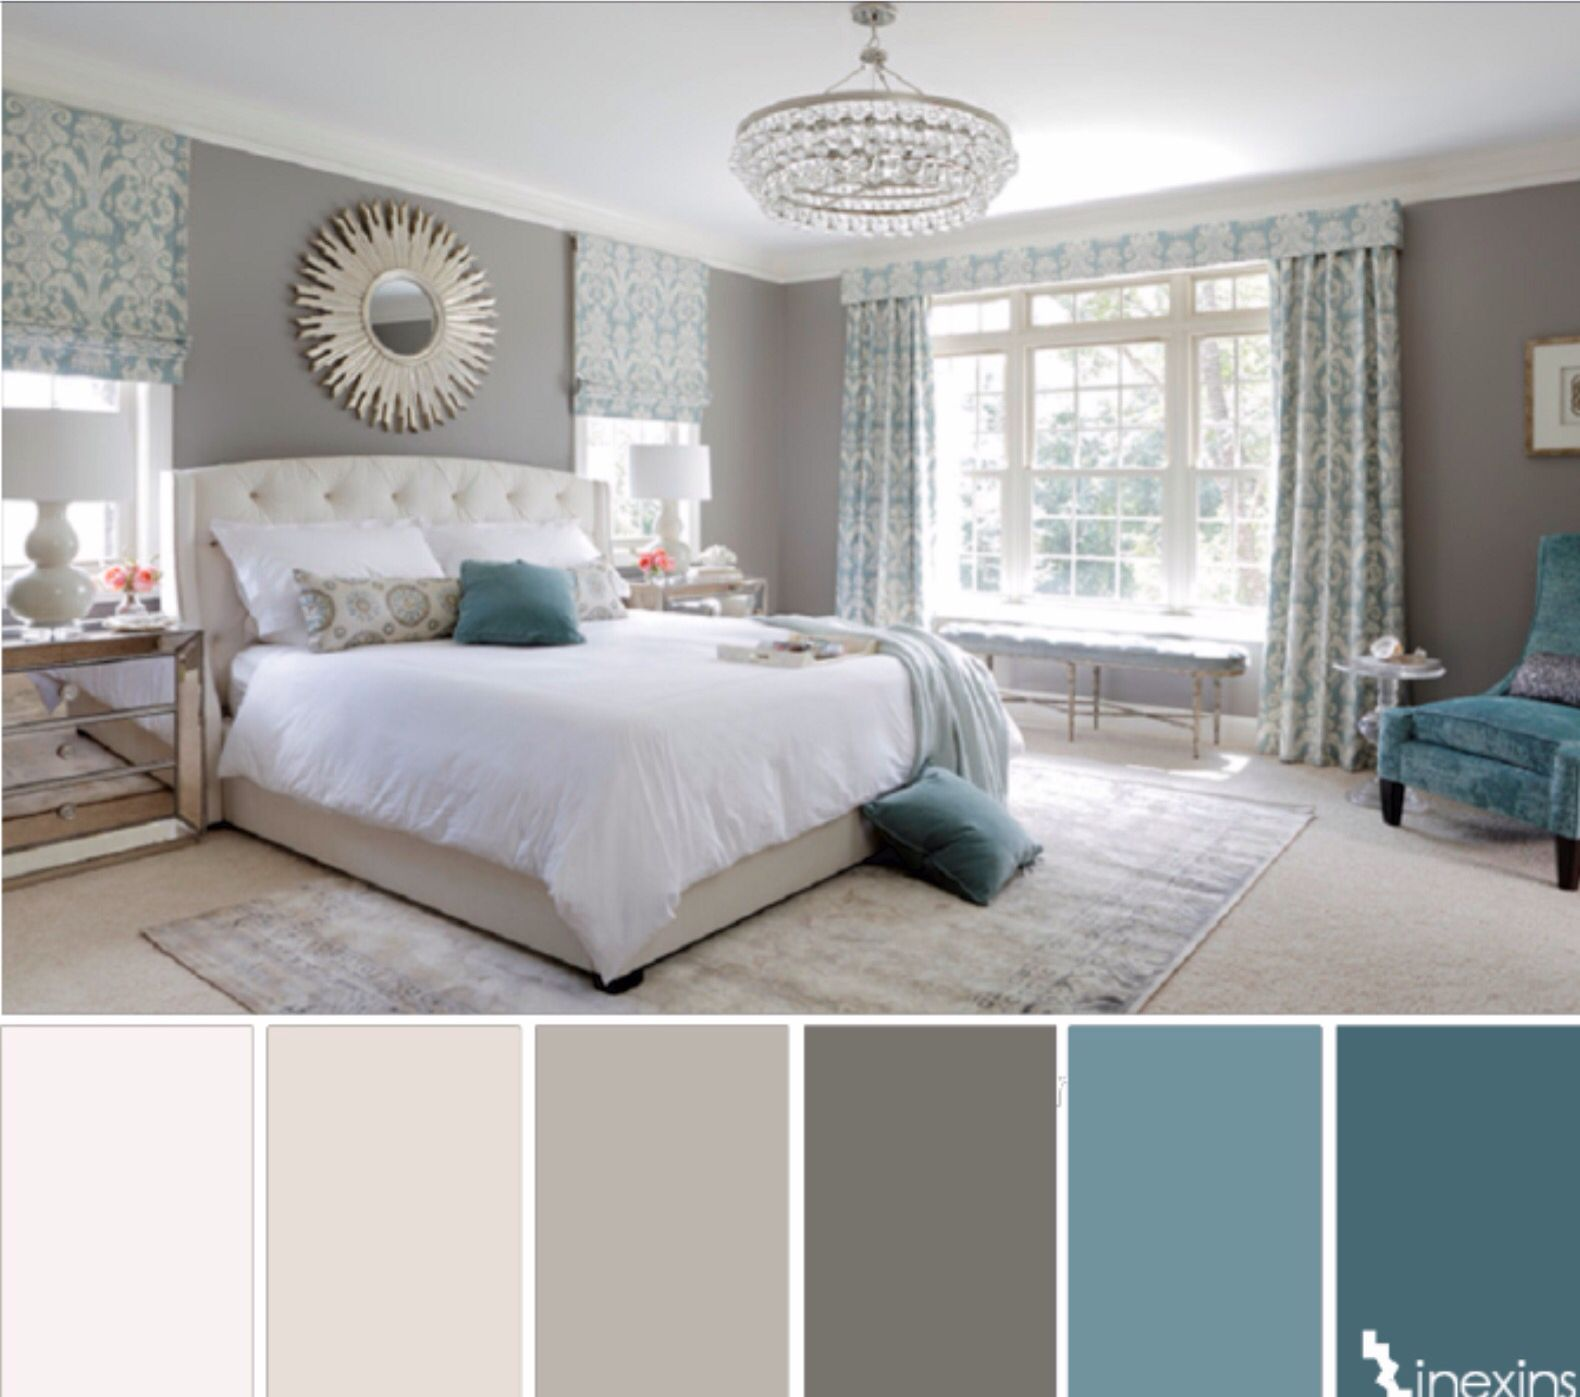 Couleurs Chambres Inspiration Couleurs Chambre Bedrooms And Living Rooms